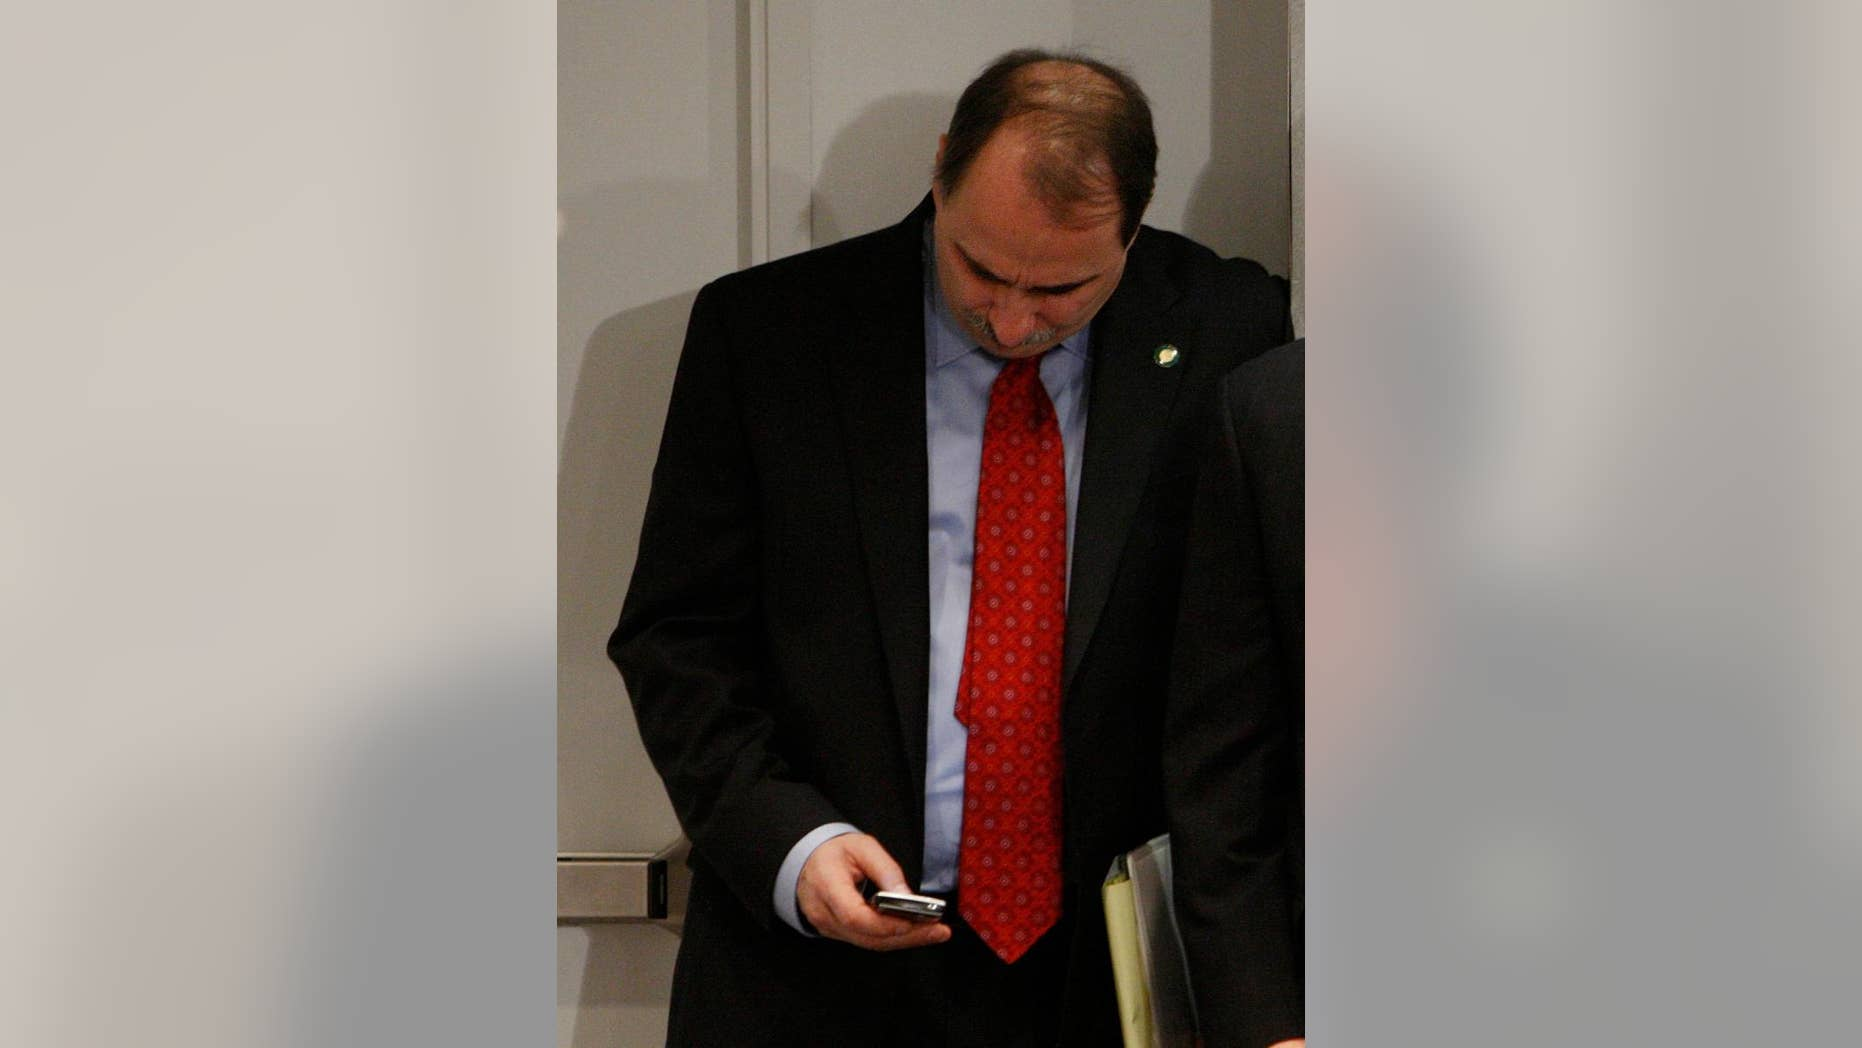 In this Jan. 9, 2009 file photo, David Axelrod checks his BlackBerry E-Mail device at the White House (AP Photo/Charles Dharapak. File)